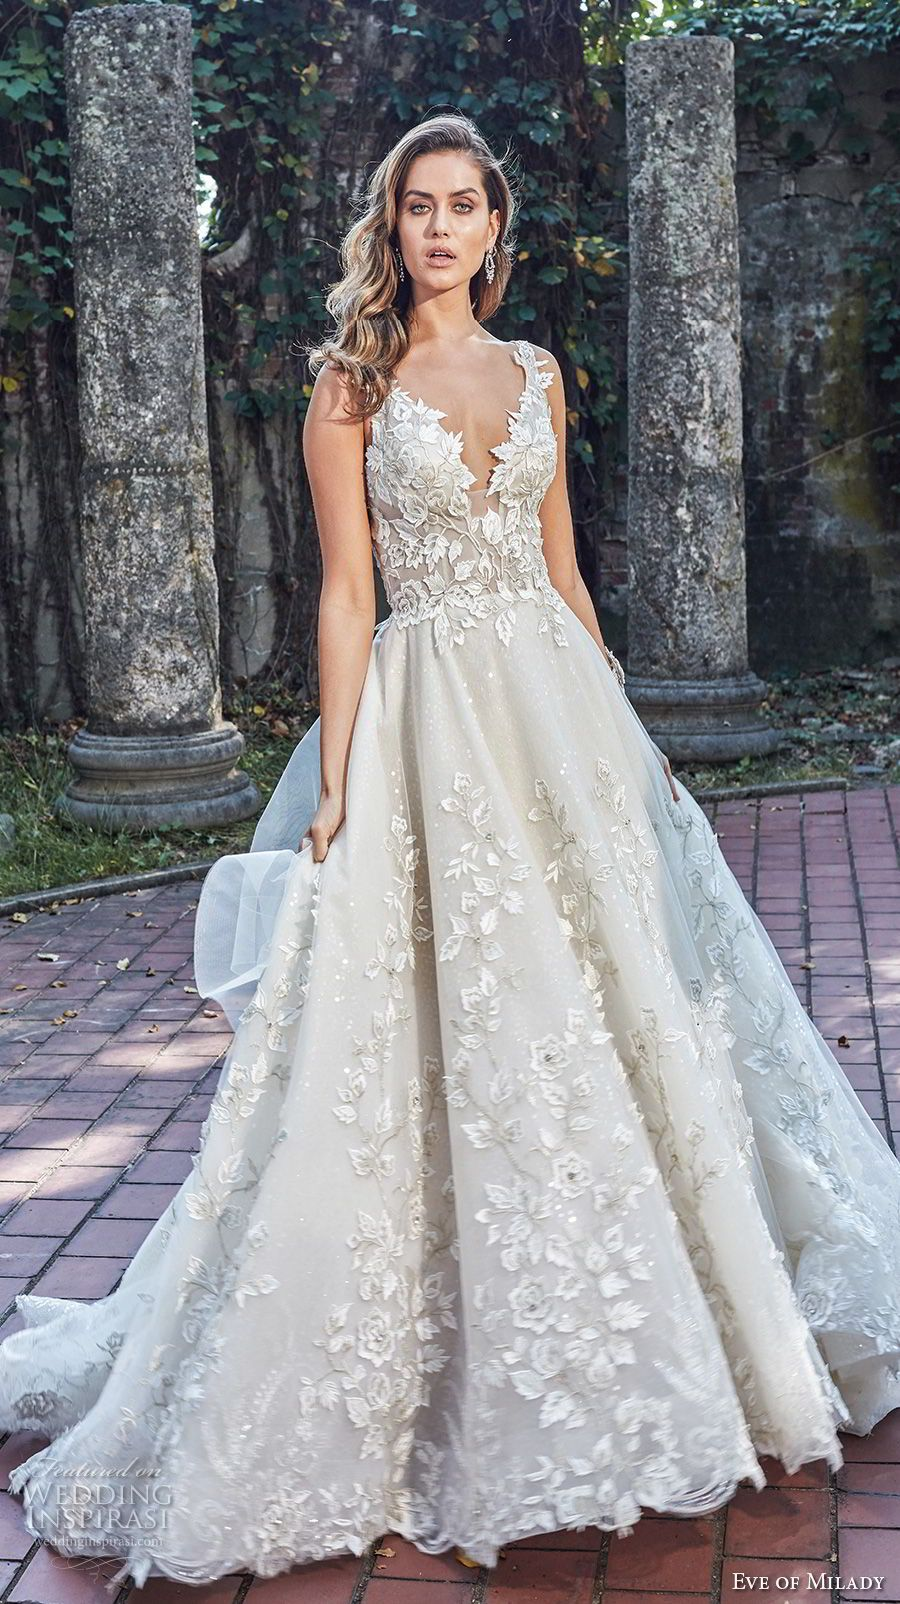 383ceb9302f eve of milady spring 2018 bridal sleeveless deep v neck full embellishment  romantic princess a line wedding dress open back chapel train (2) mv -- Eve  of ...